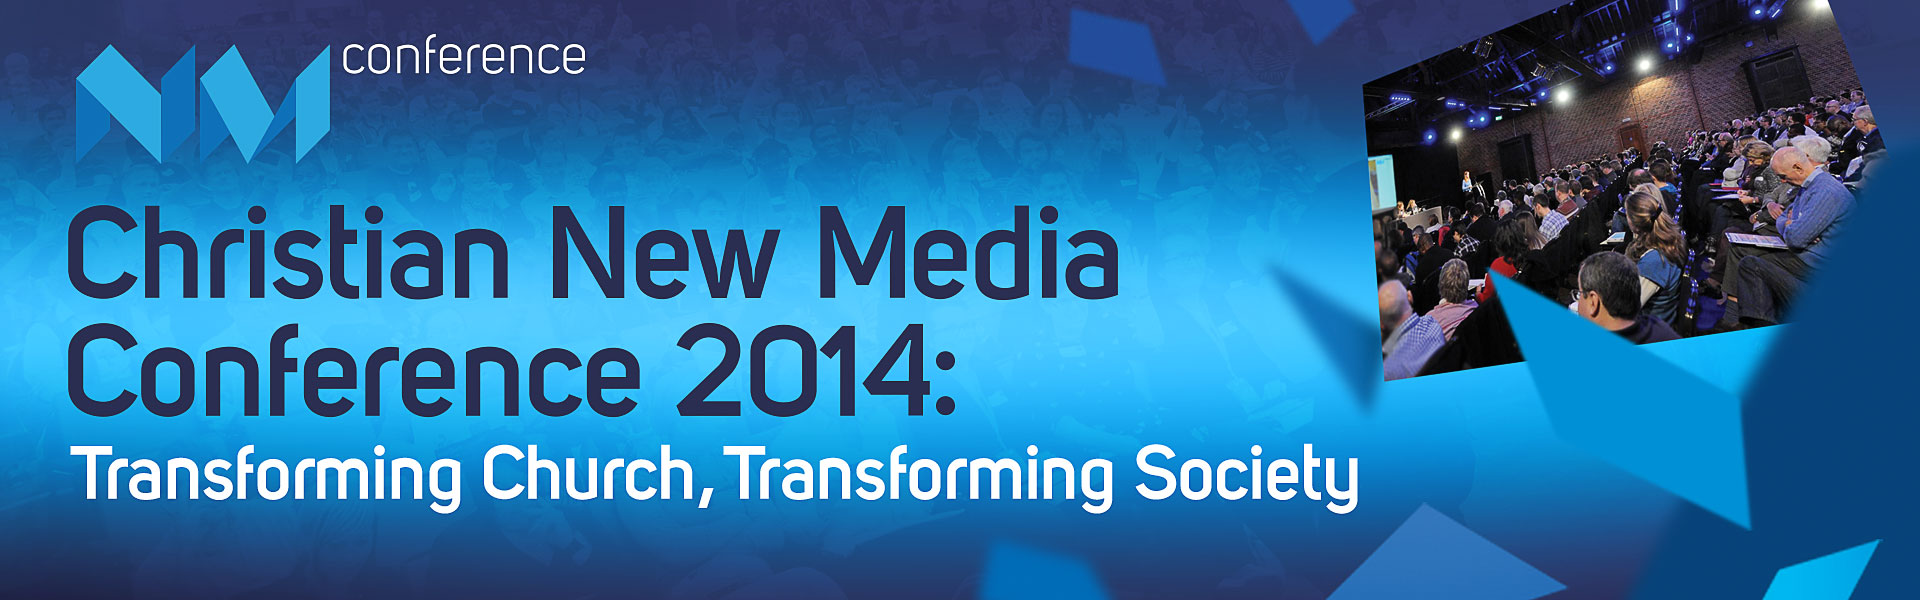 Christian New Media Conference 2014